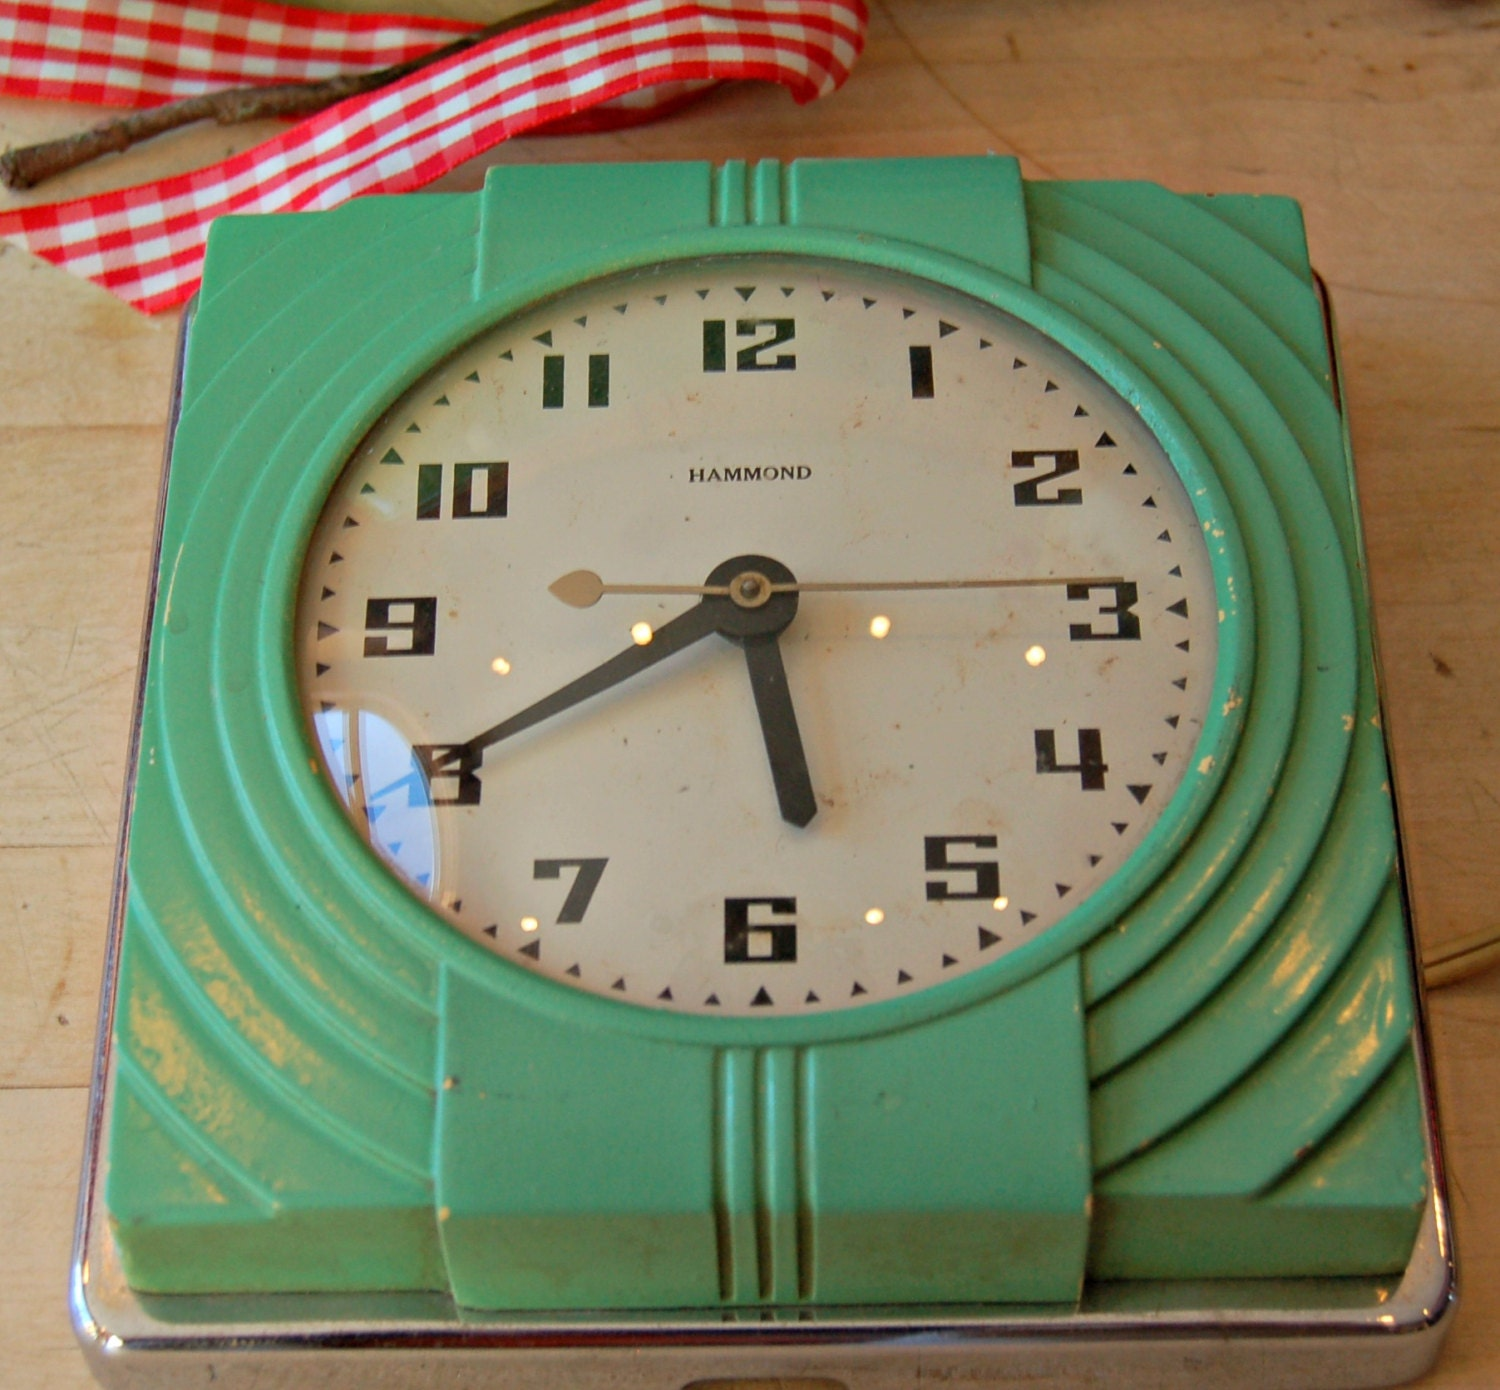 Retro Electric Kitchen Wall Clocks: Vintage Art Deco Jade Green Color Hammond Prudence Kitchen